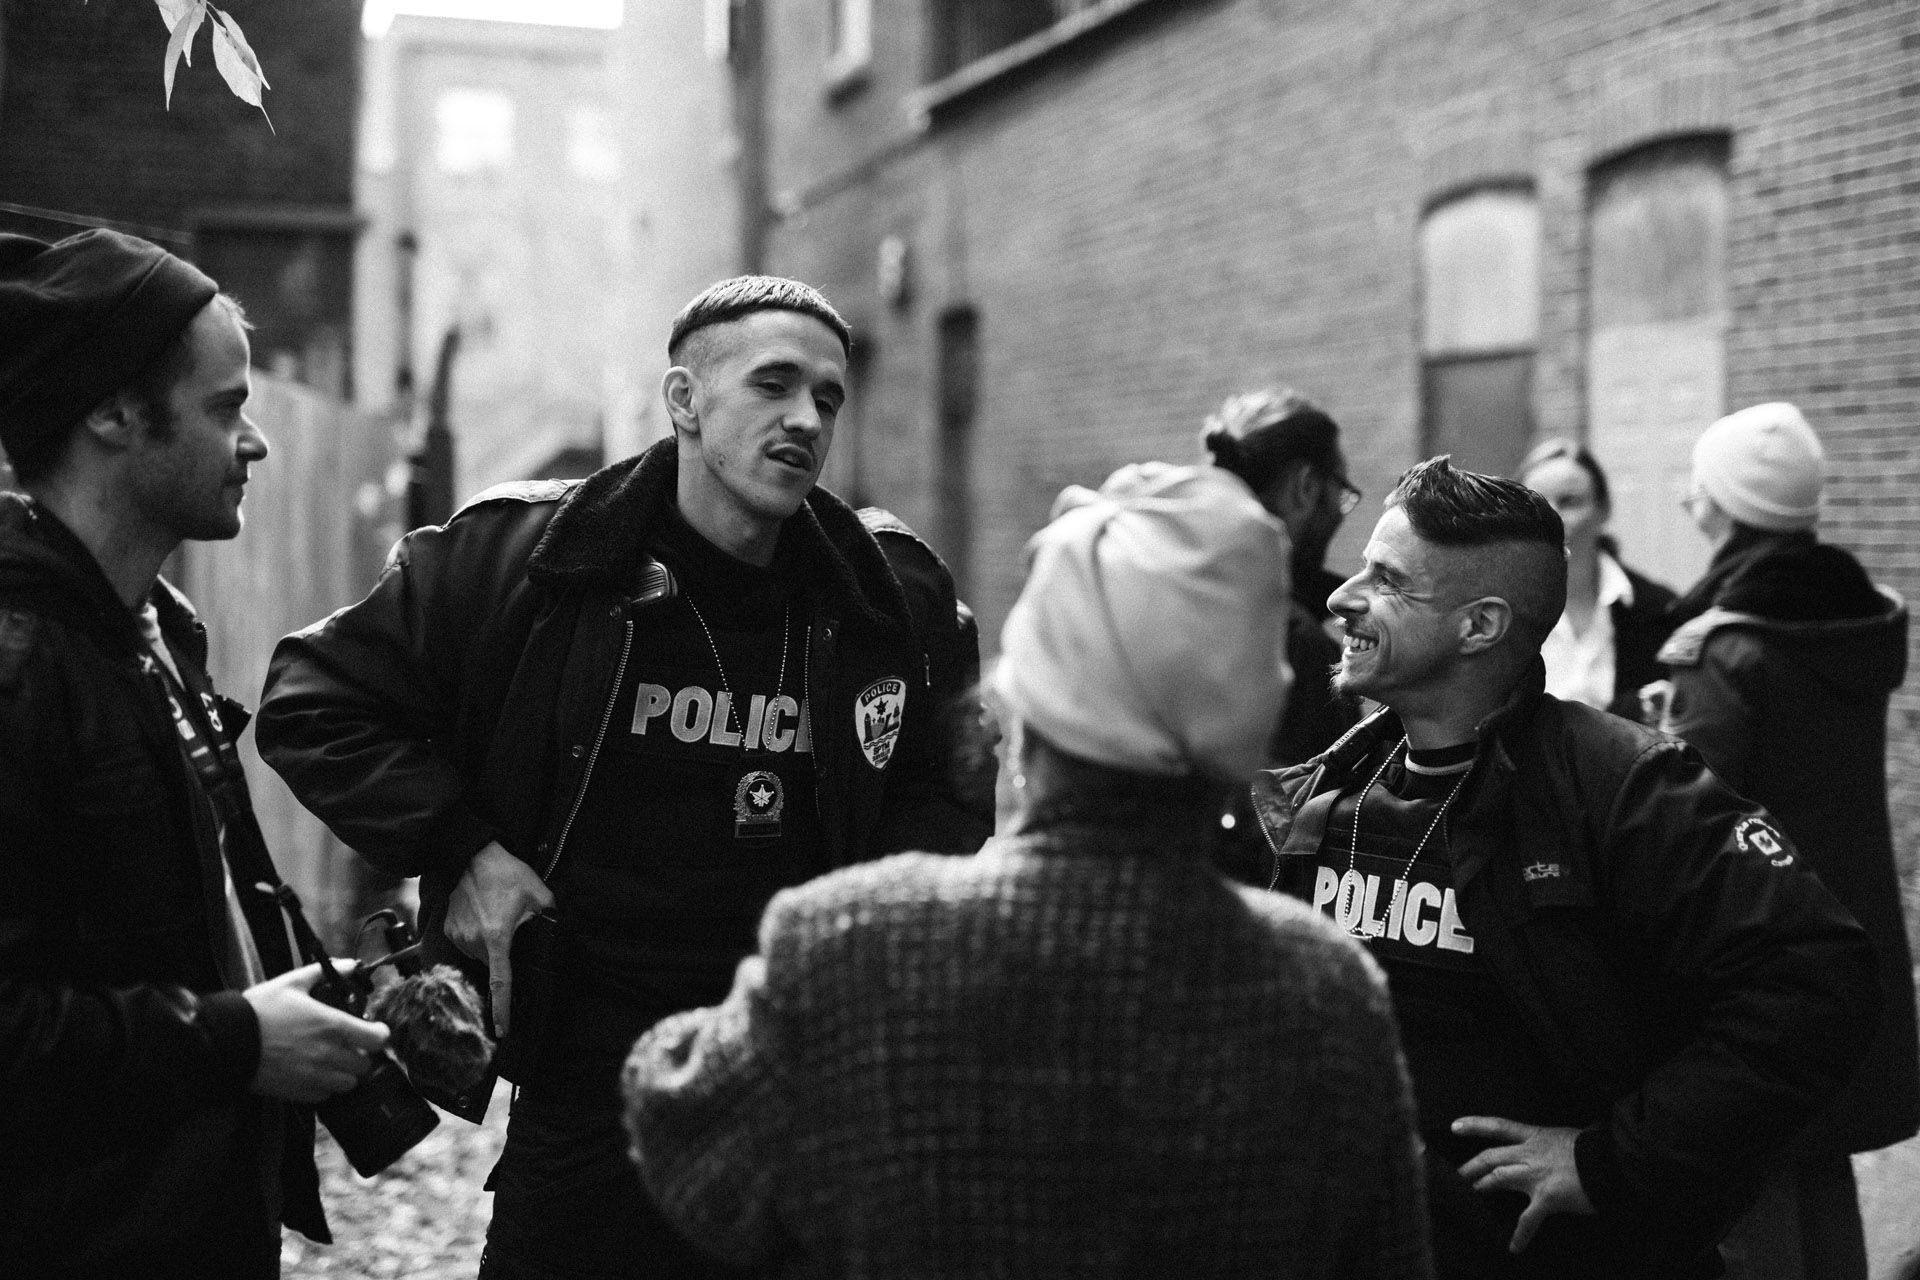 actors Hugolin Chevrette-Landesque and Emile Schneider dressed as cops talking and laughing with the filming team in behind the scenes for TV series La Loi C'est La Loi filmed by Les Gamins for TV5 Unis